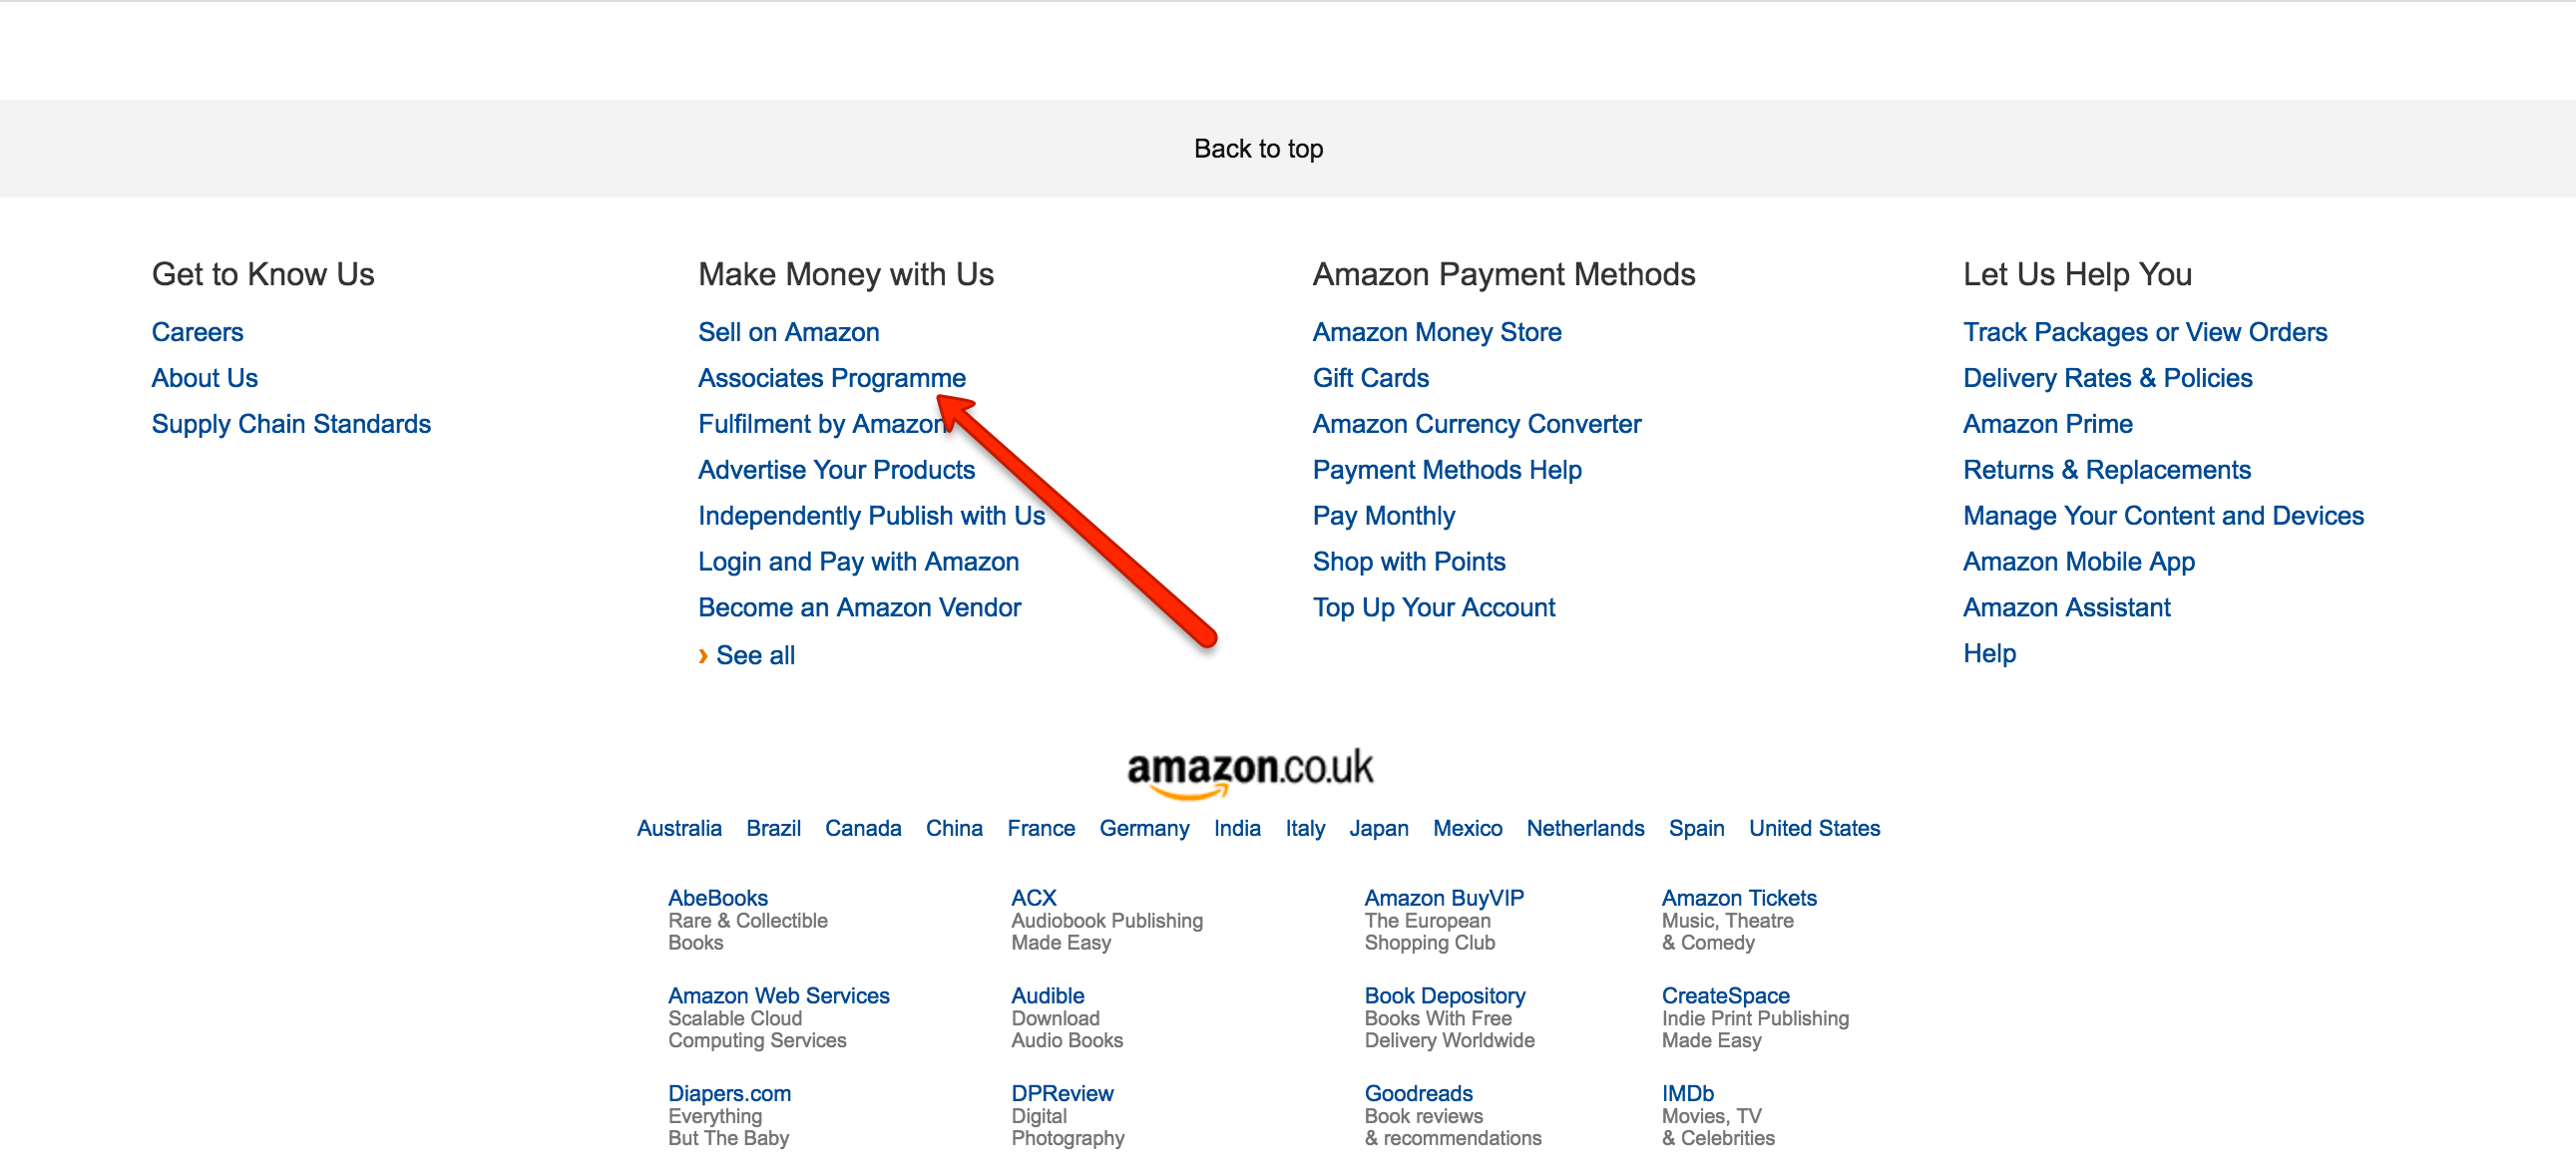 The footer of Amazon.co.uk